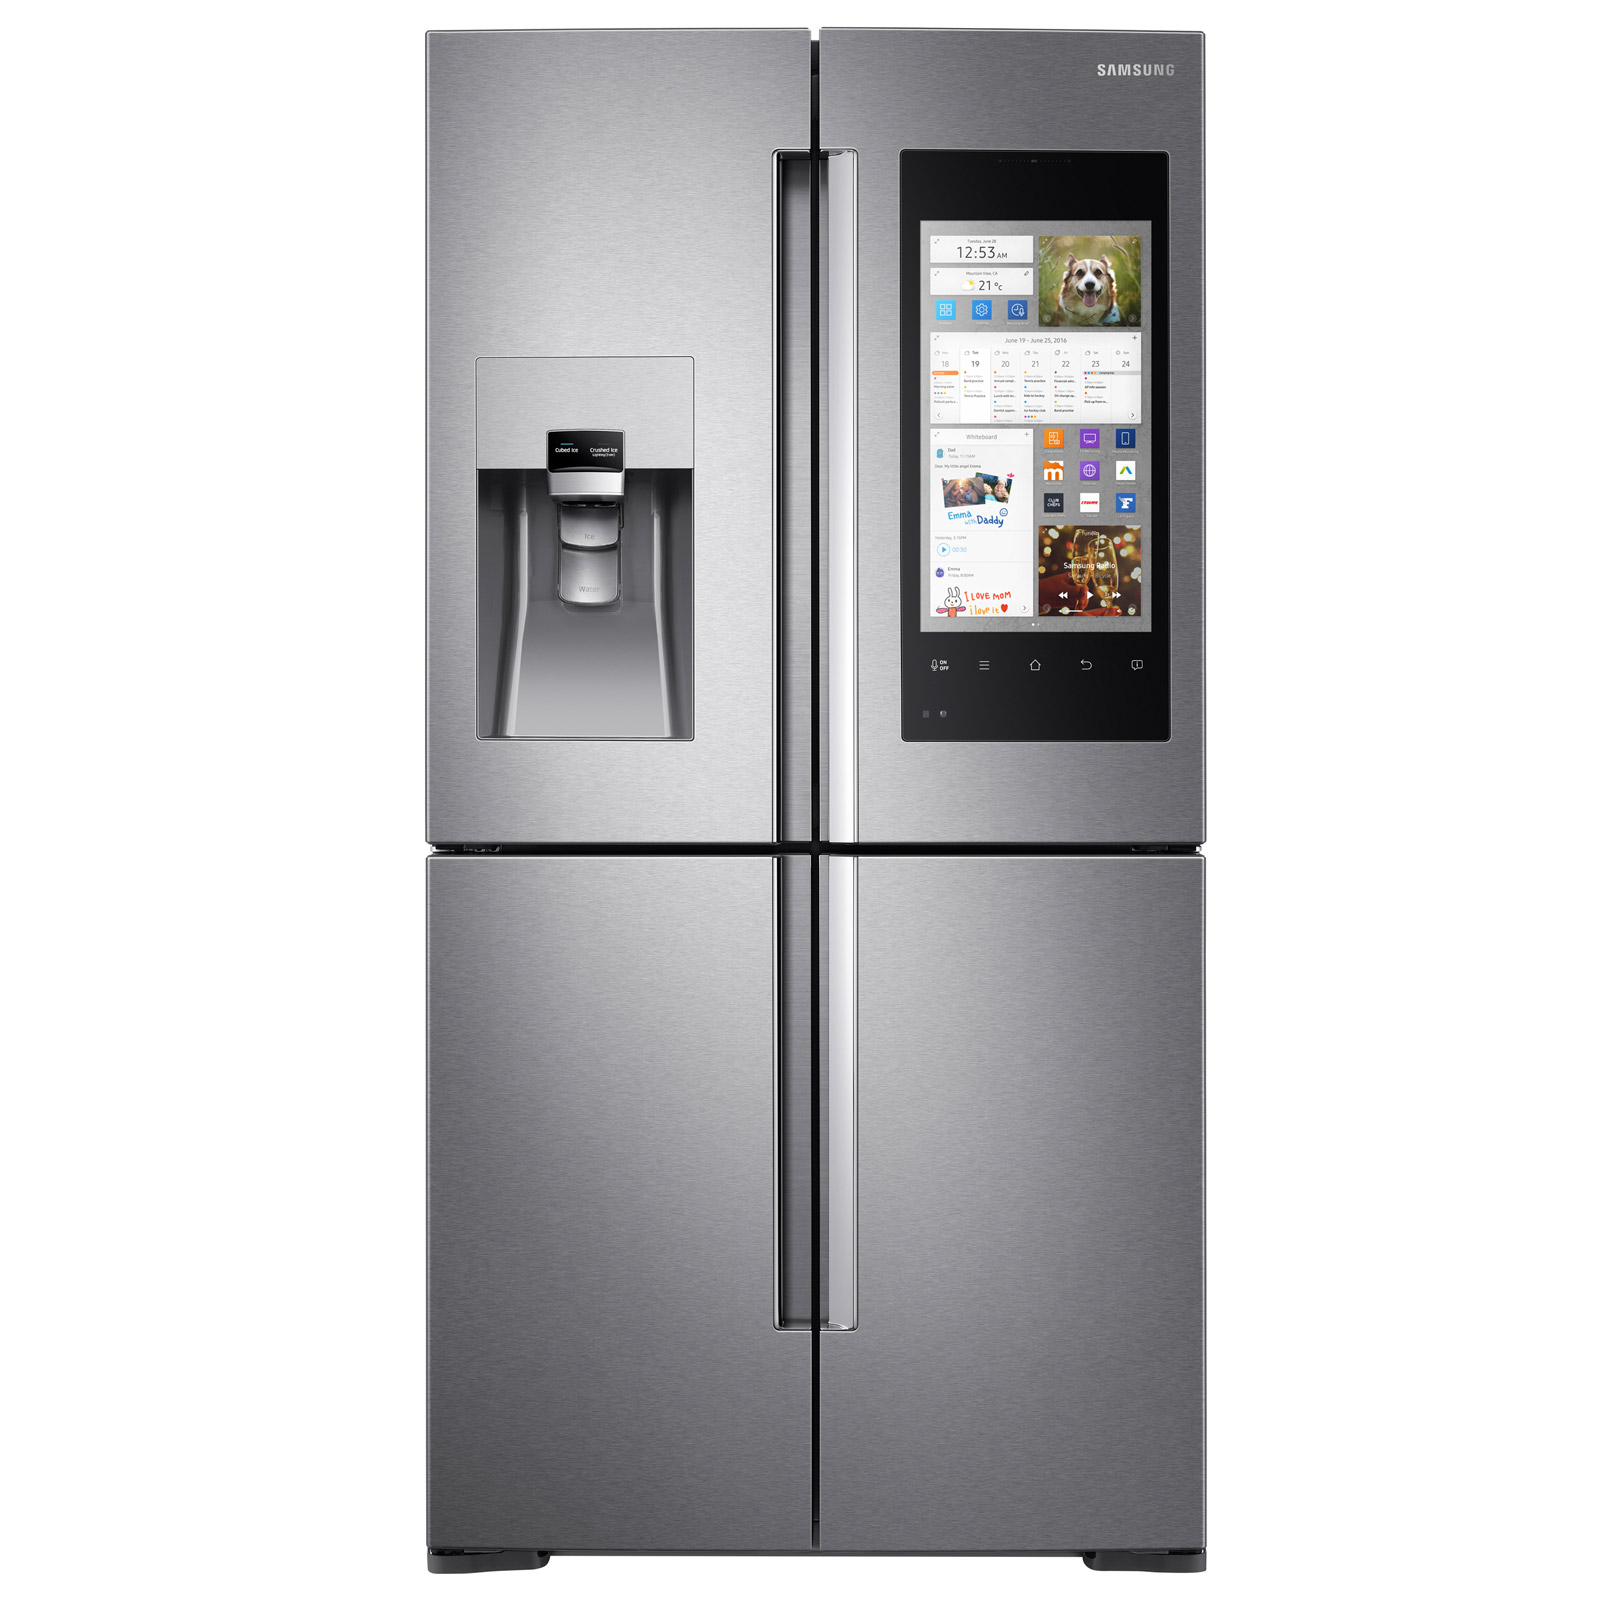 Samsung Rf56m9540sr Family Hub Multi Door Fridge Freezer